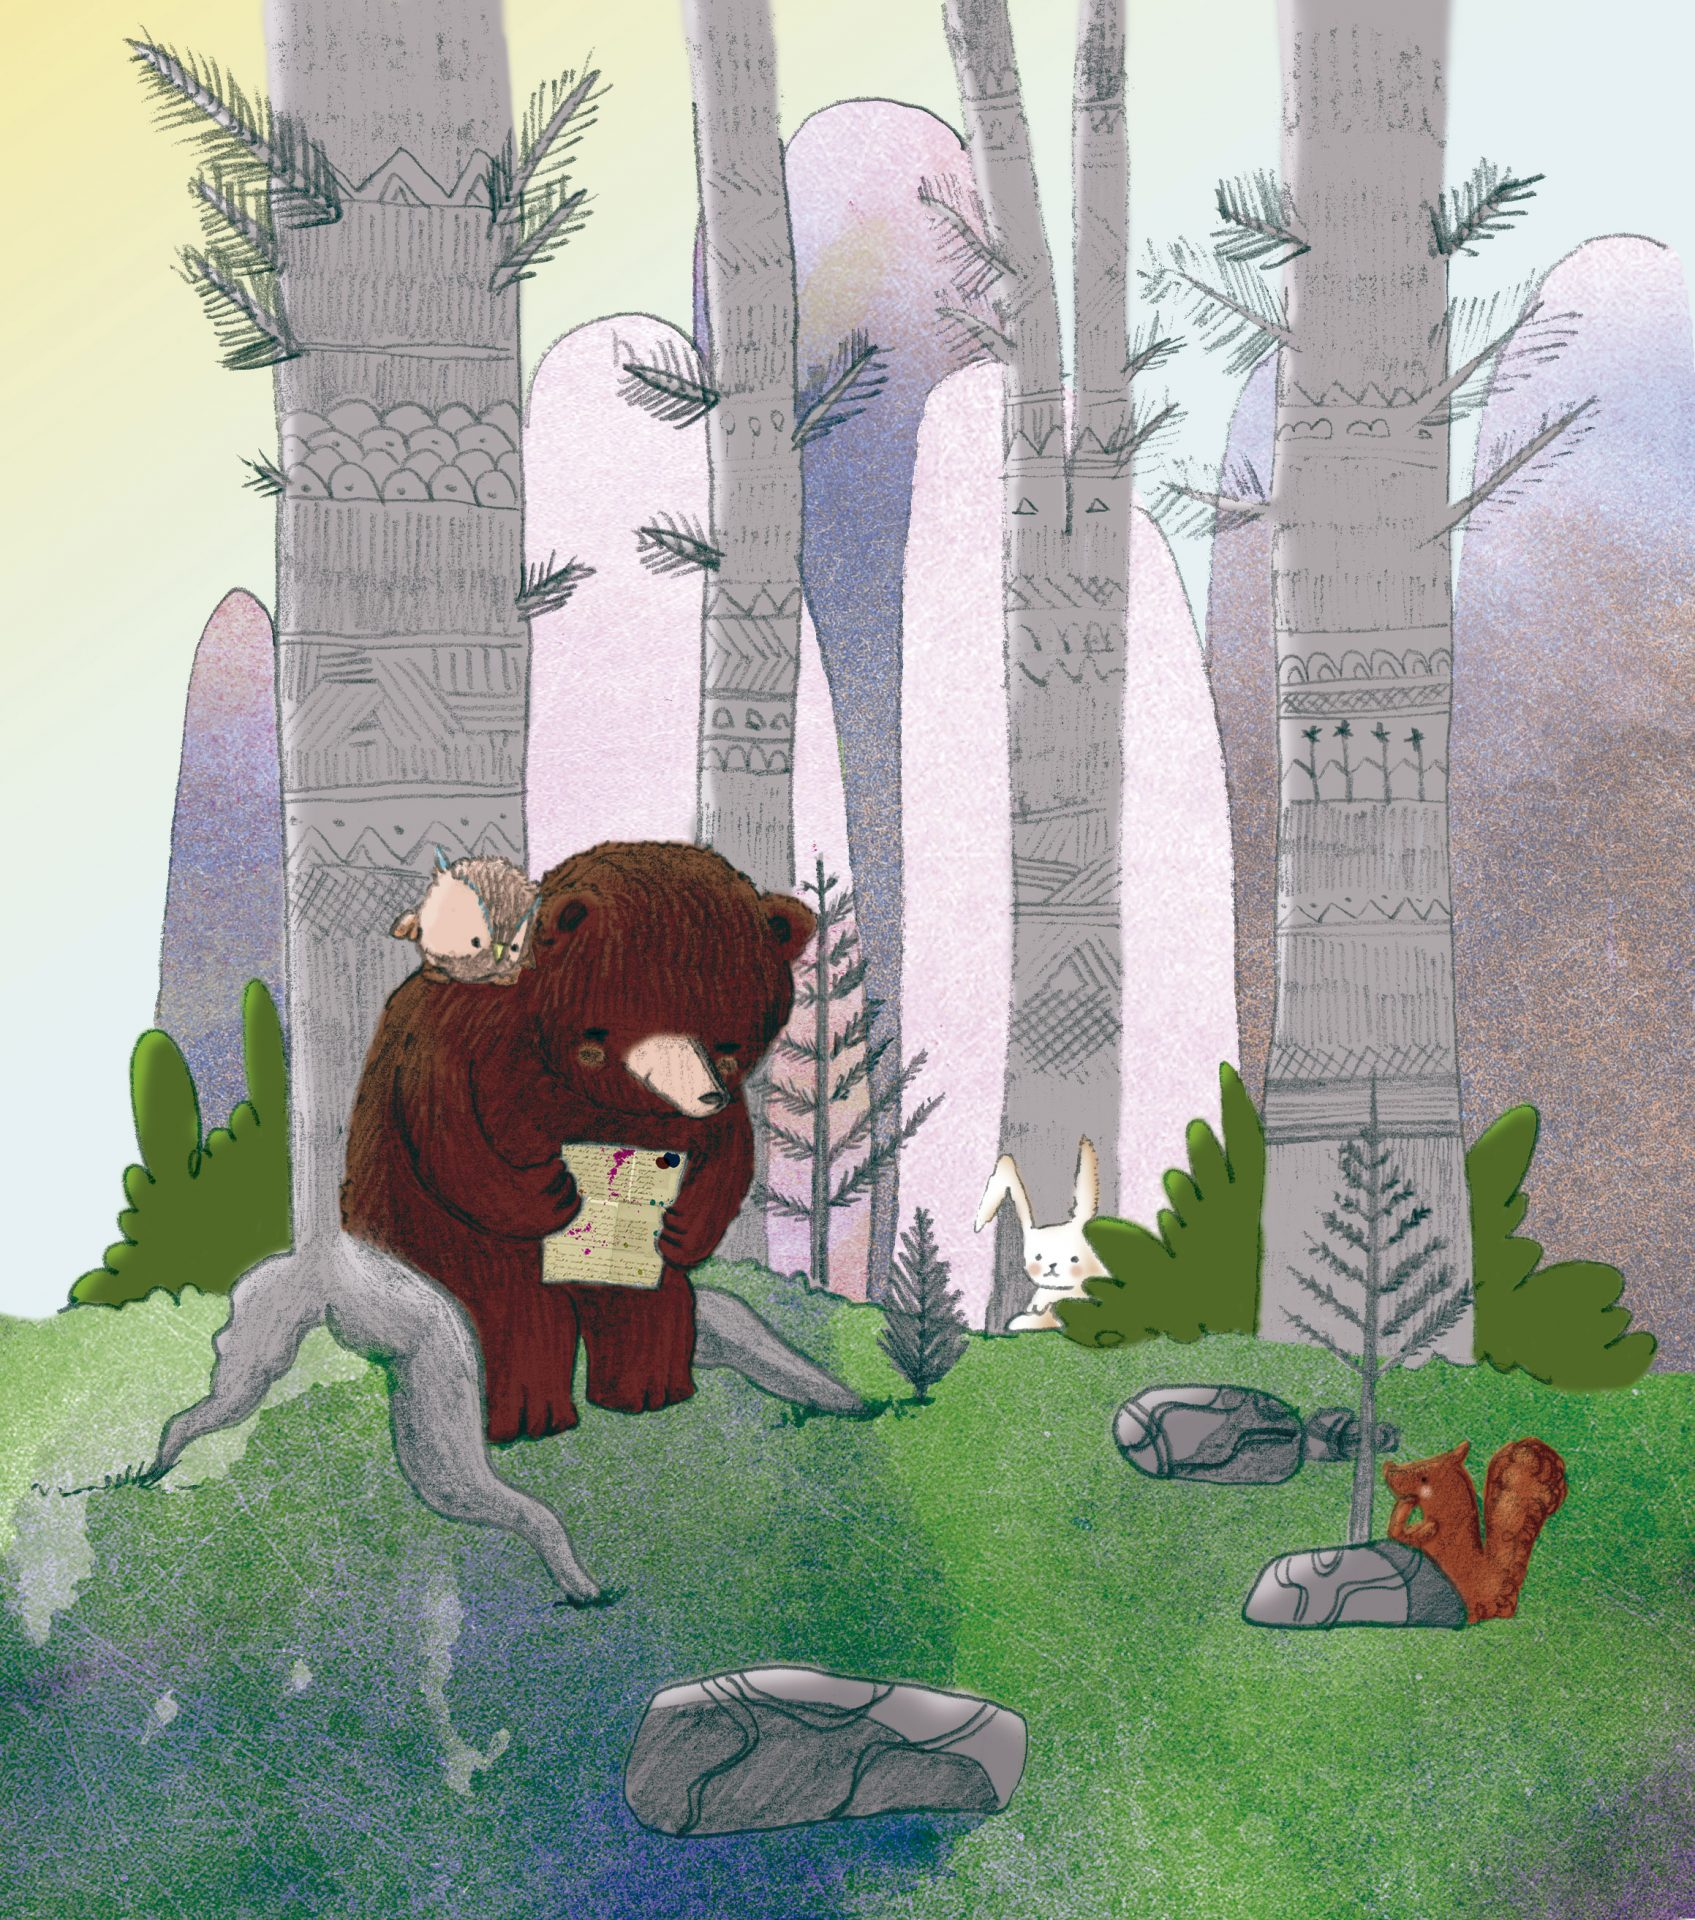 Illustration of a bear reading a book in the forest.